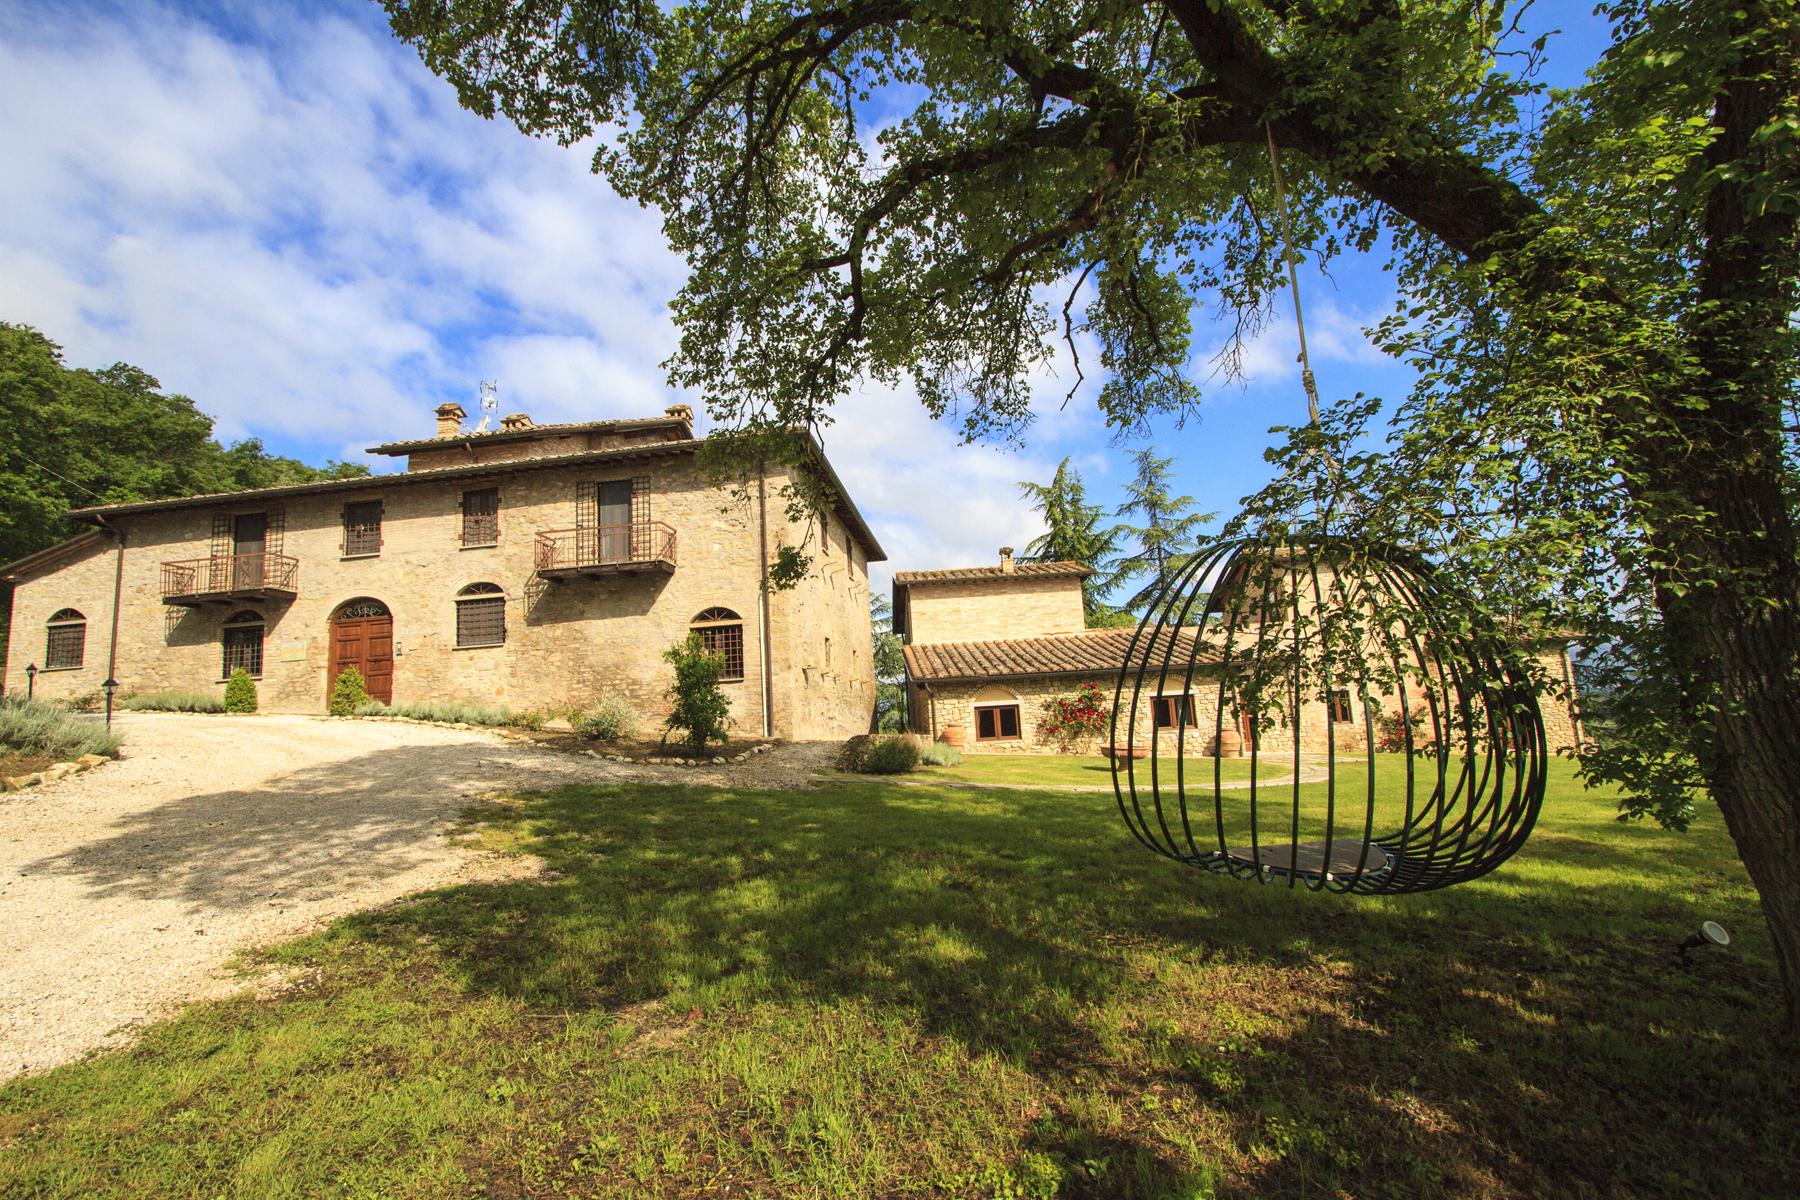 Single Family Home for Sale at Lovely country house with pool between Umbria and Tuscany Citerna, Italy